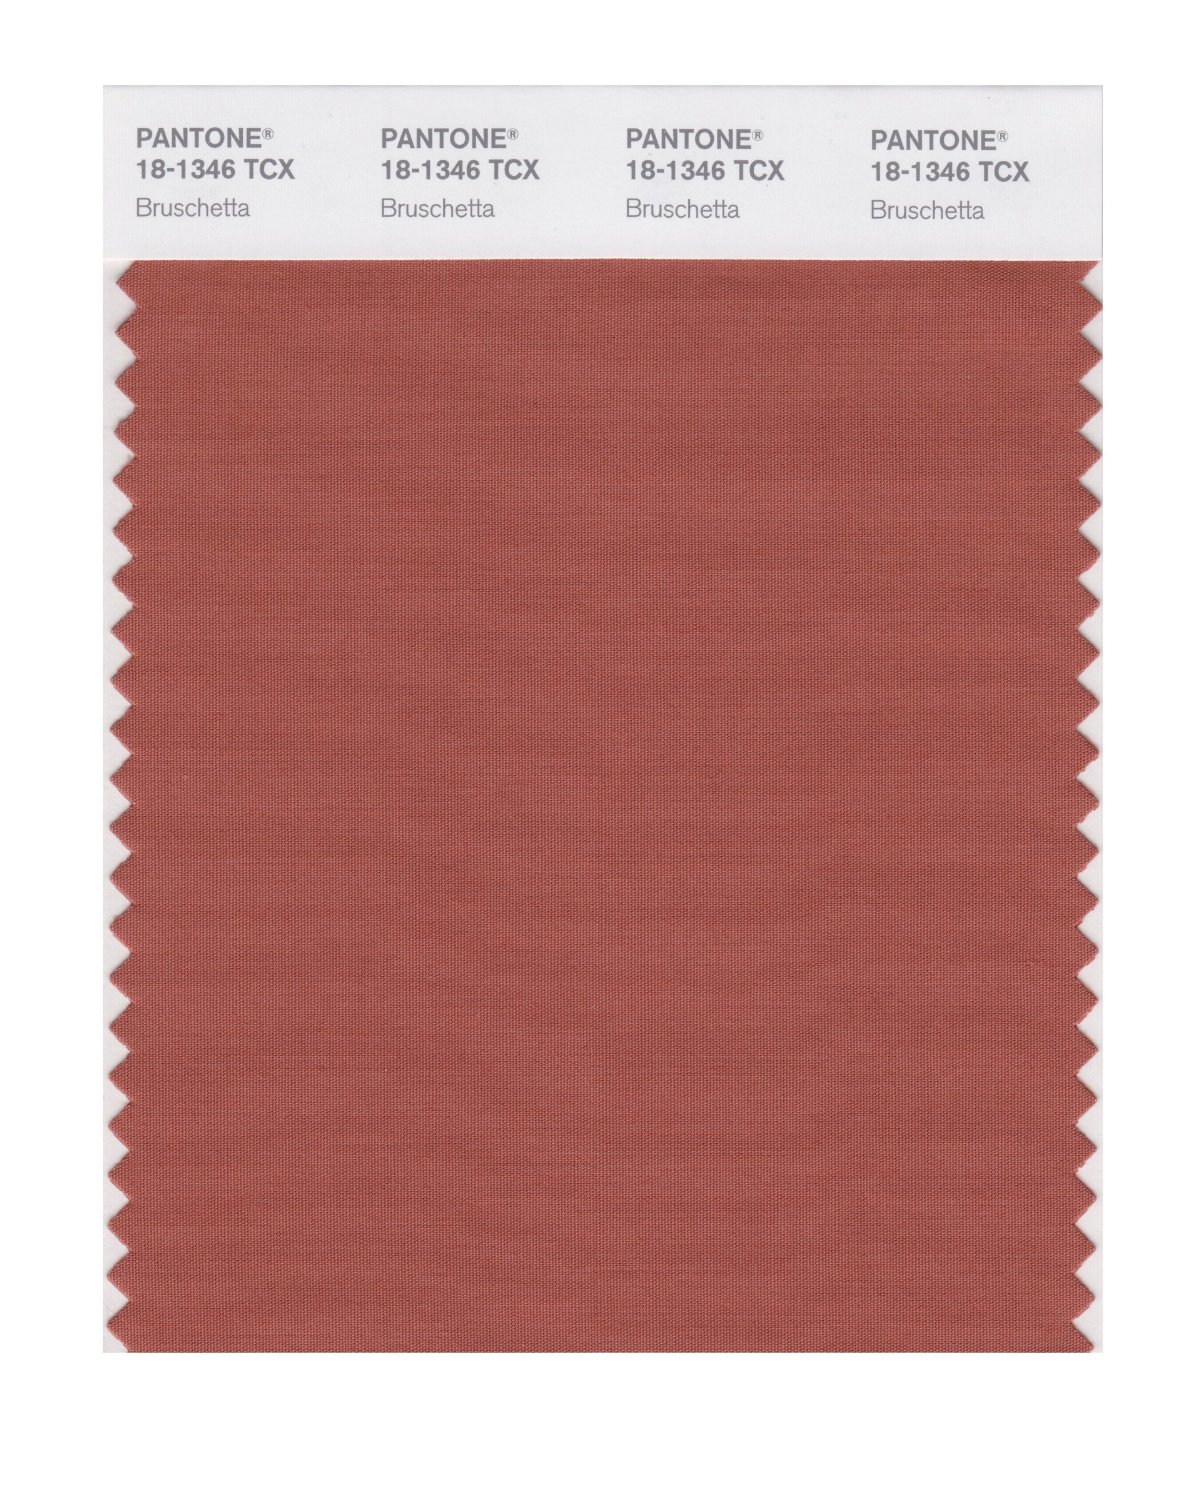 Pantone Smart Swatch 18-1346 Bruschetta